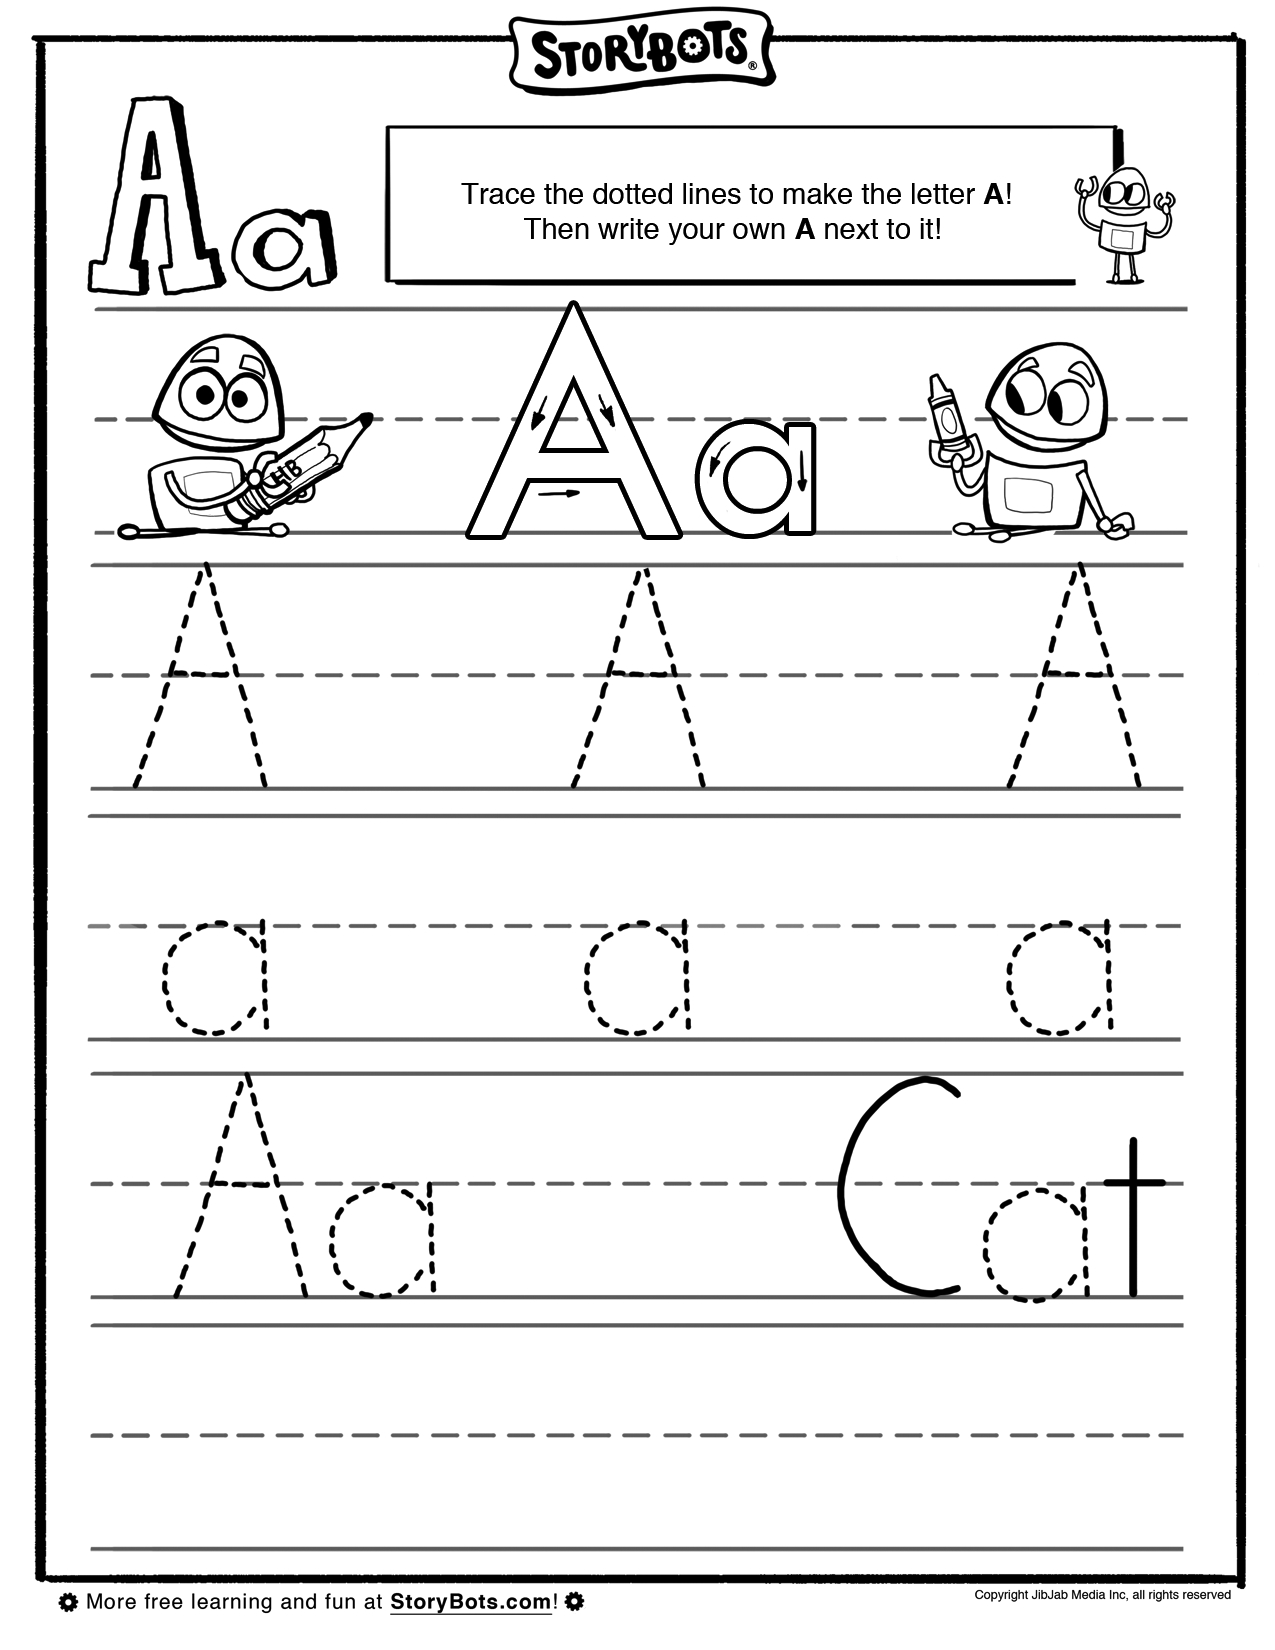 Letter A Tracing Sheet - Abc Activity Sheets - Storybots with Tracing Letters Make Your Own